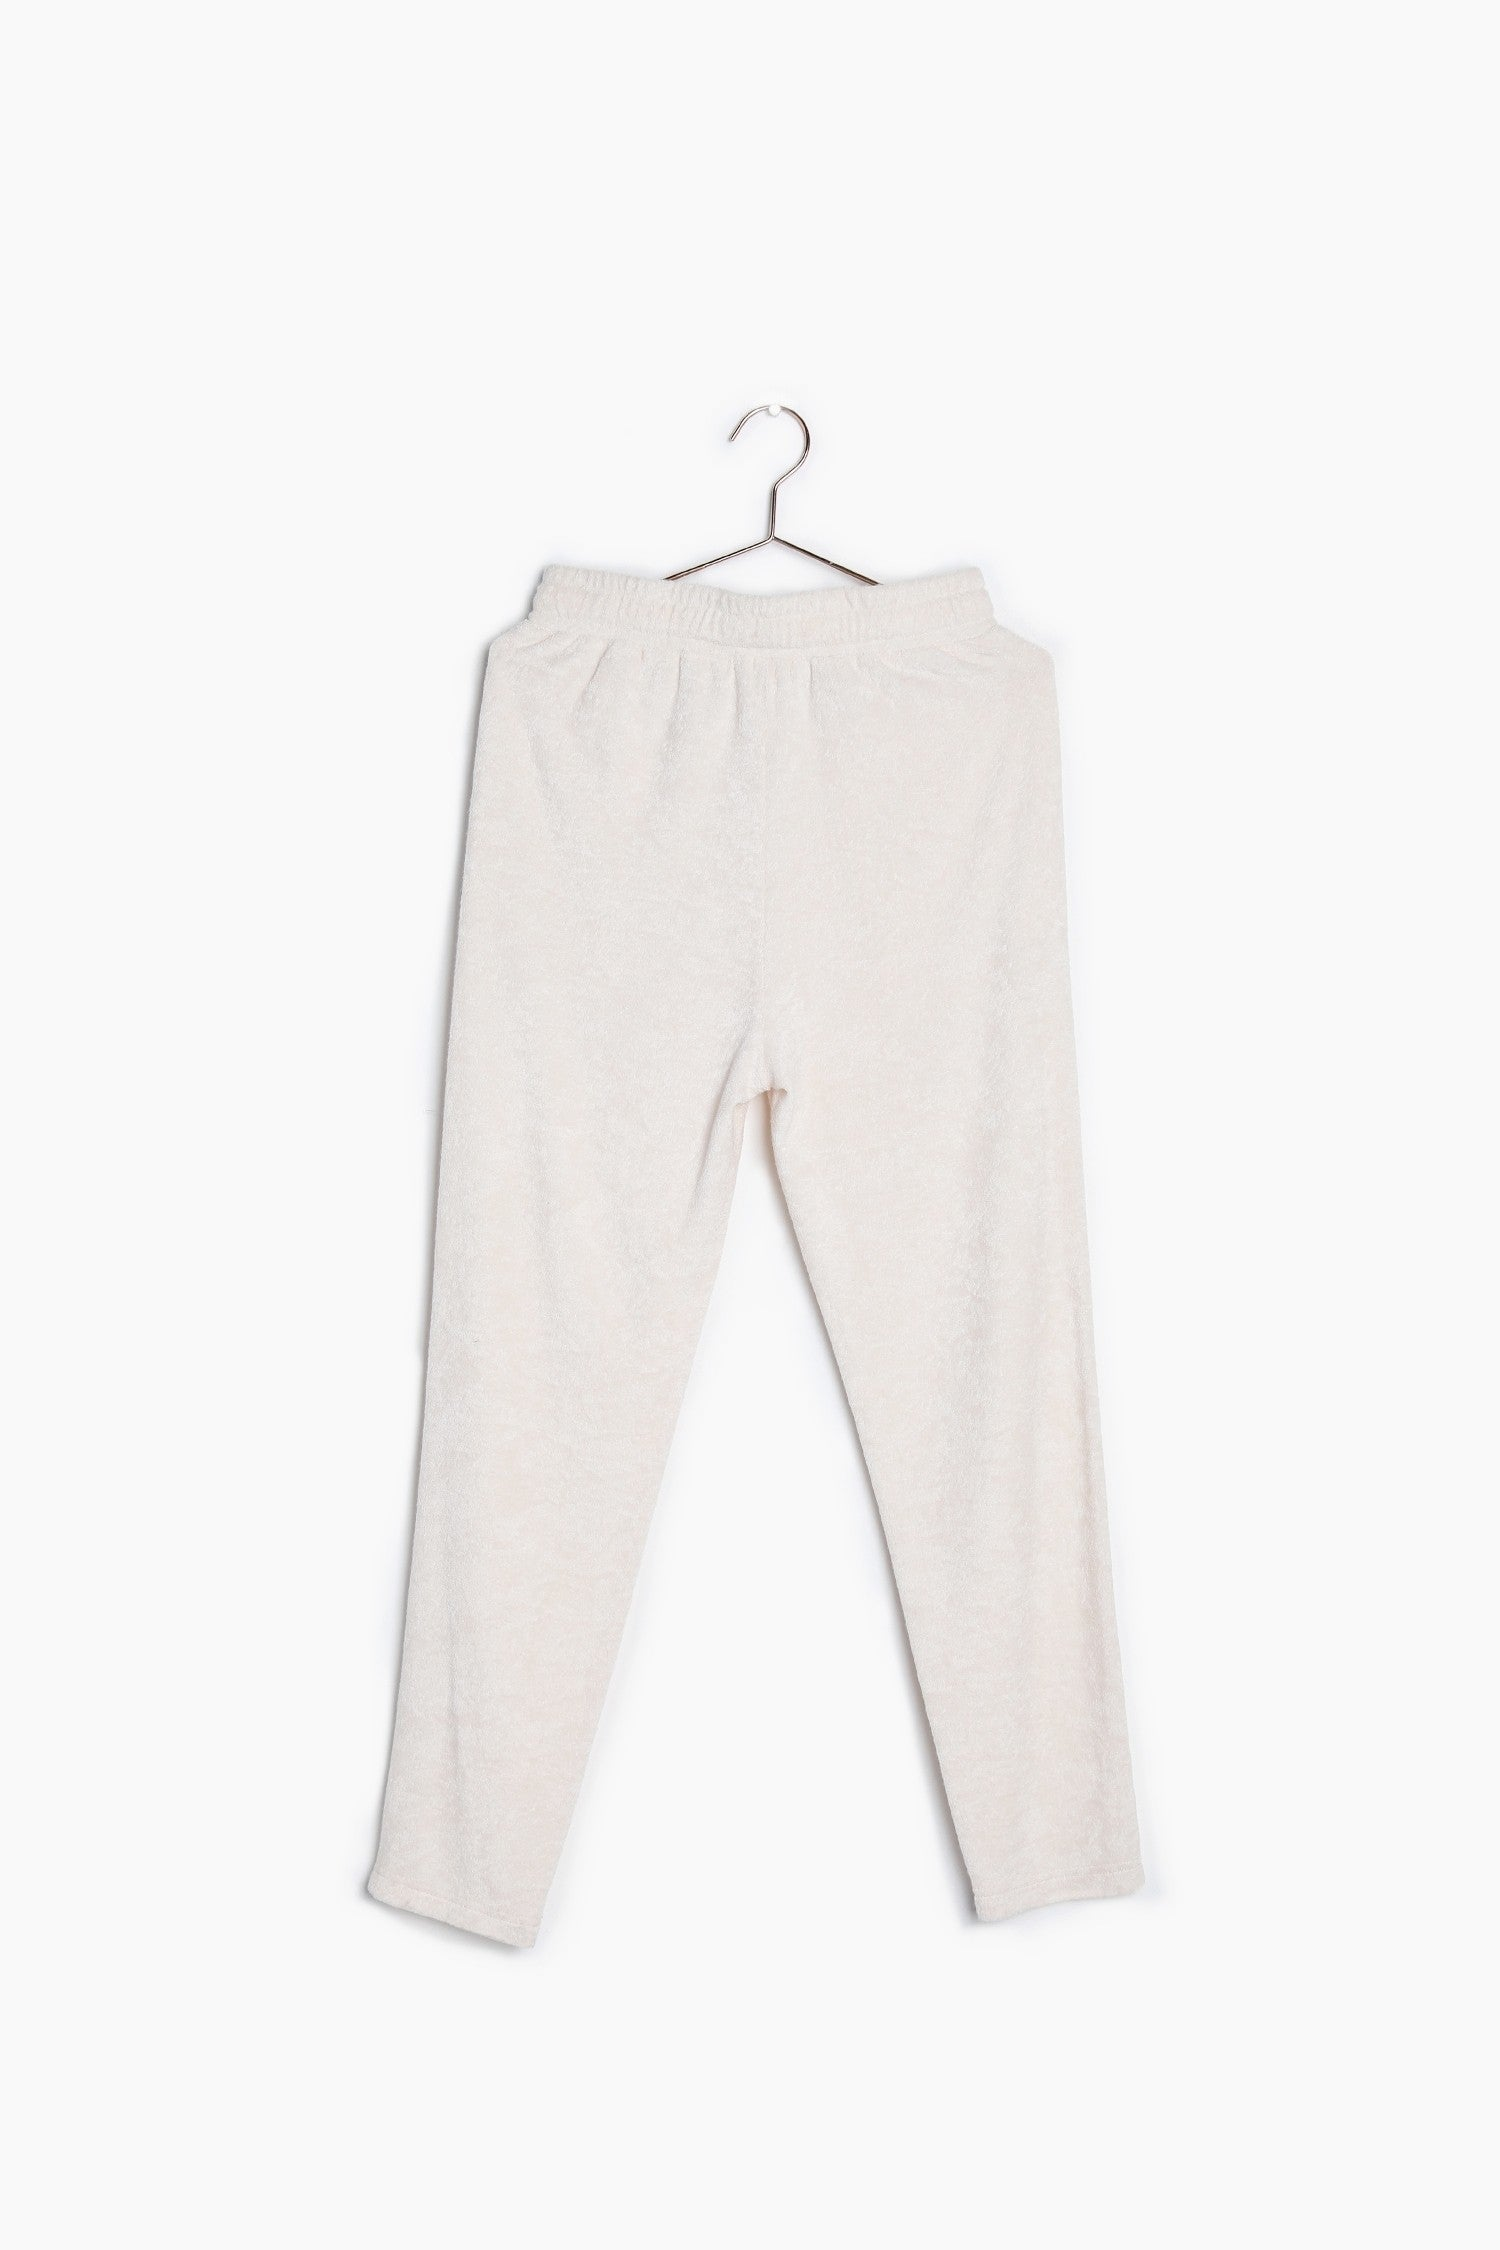 The Jake Lounge Pants